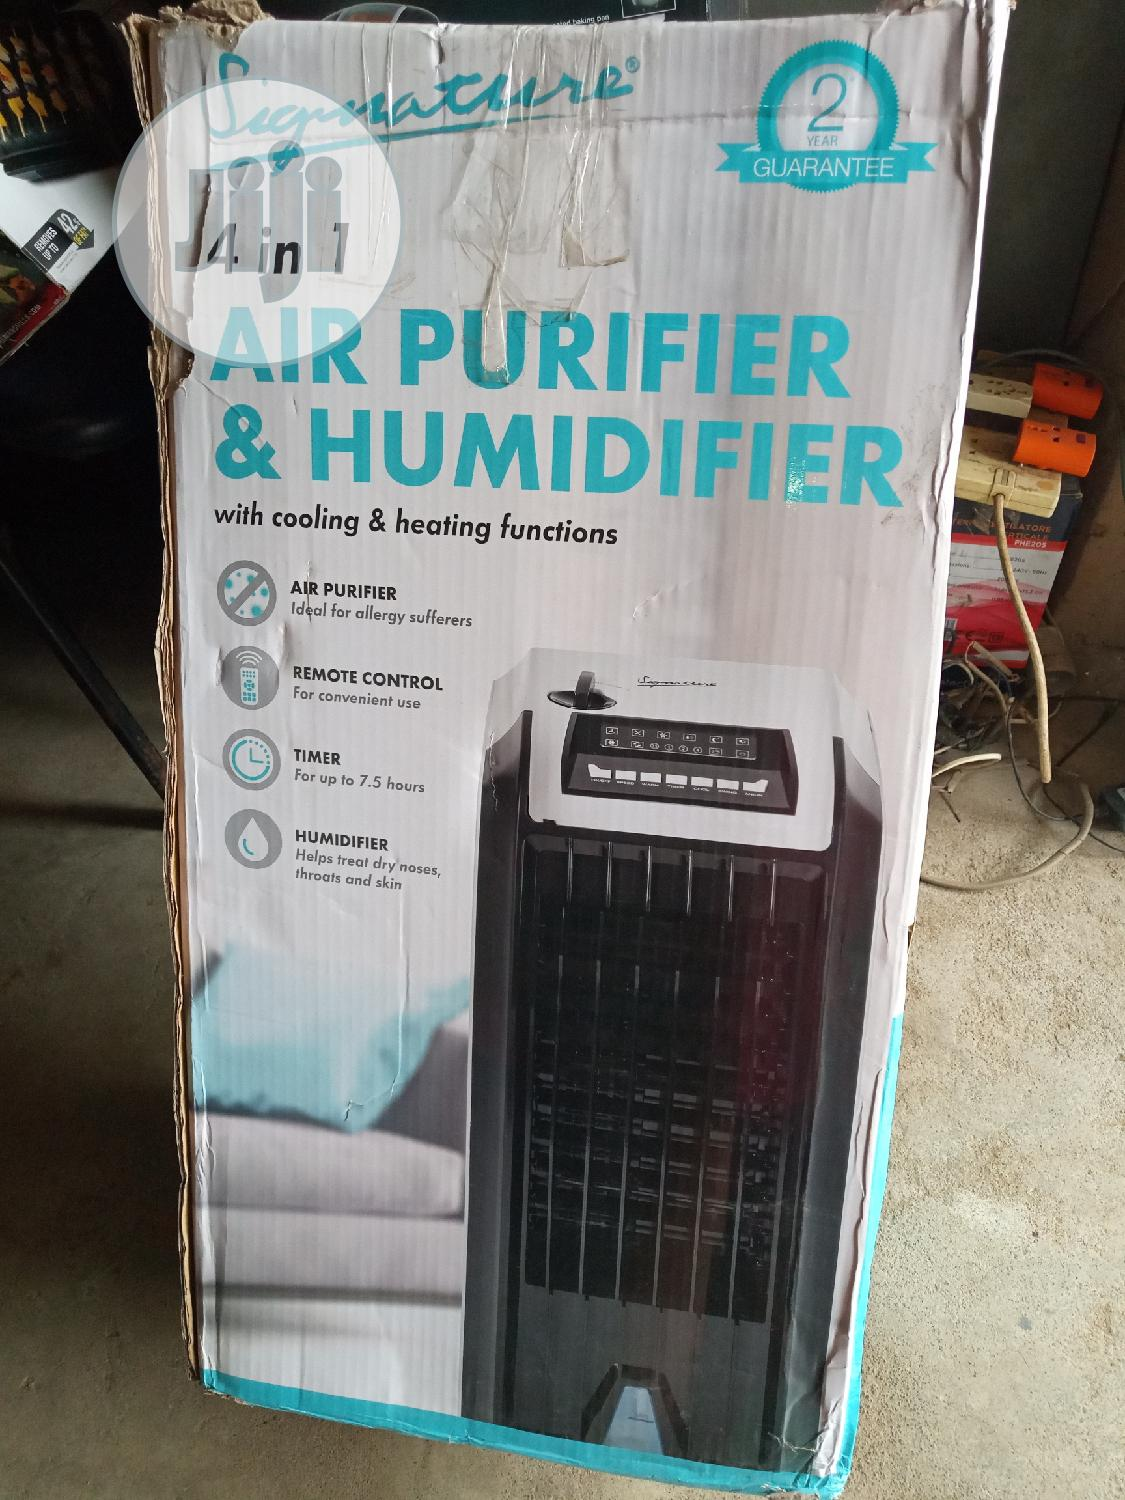 Original Signature 4 In 1 Air Purifier And Humidifier.